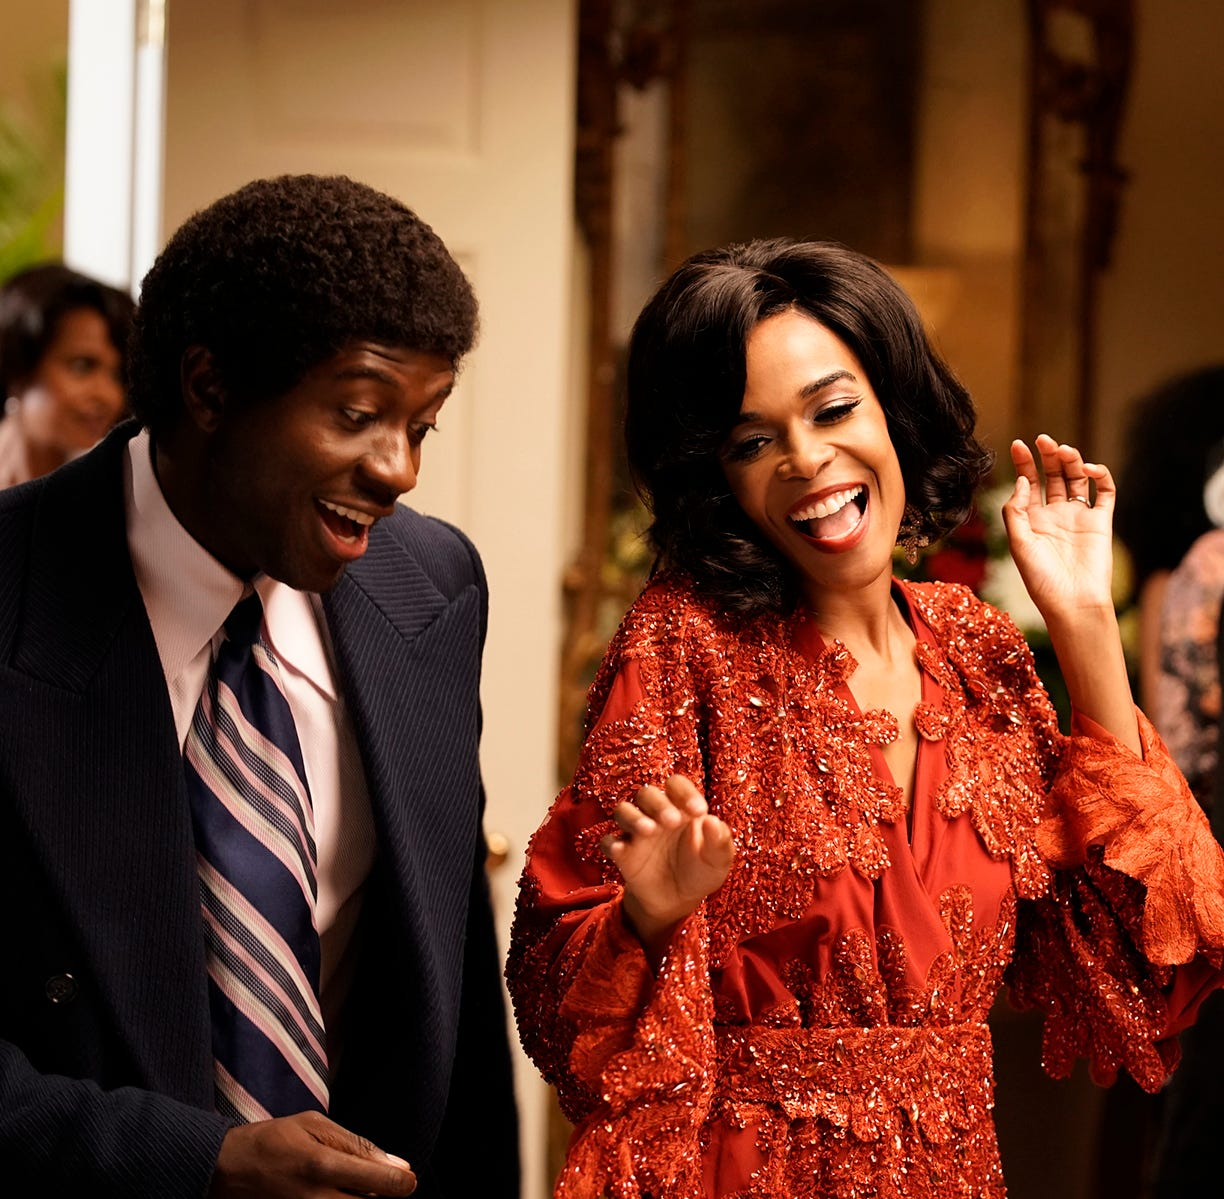 Watch Destiny's Child alum Michelle Williams as Diana Ross on BET drama 'American Soul'